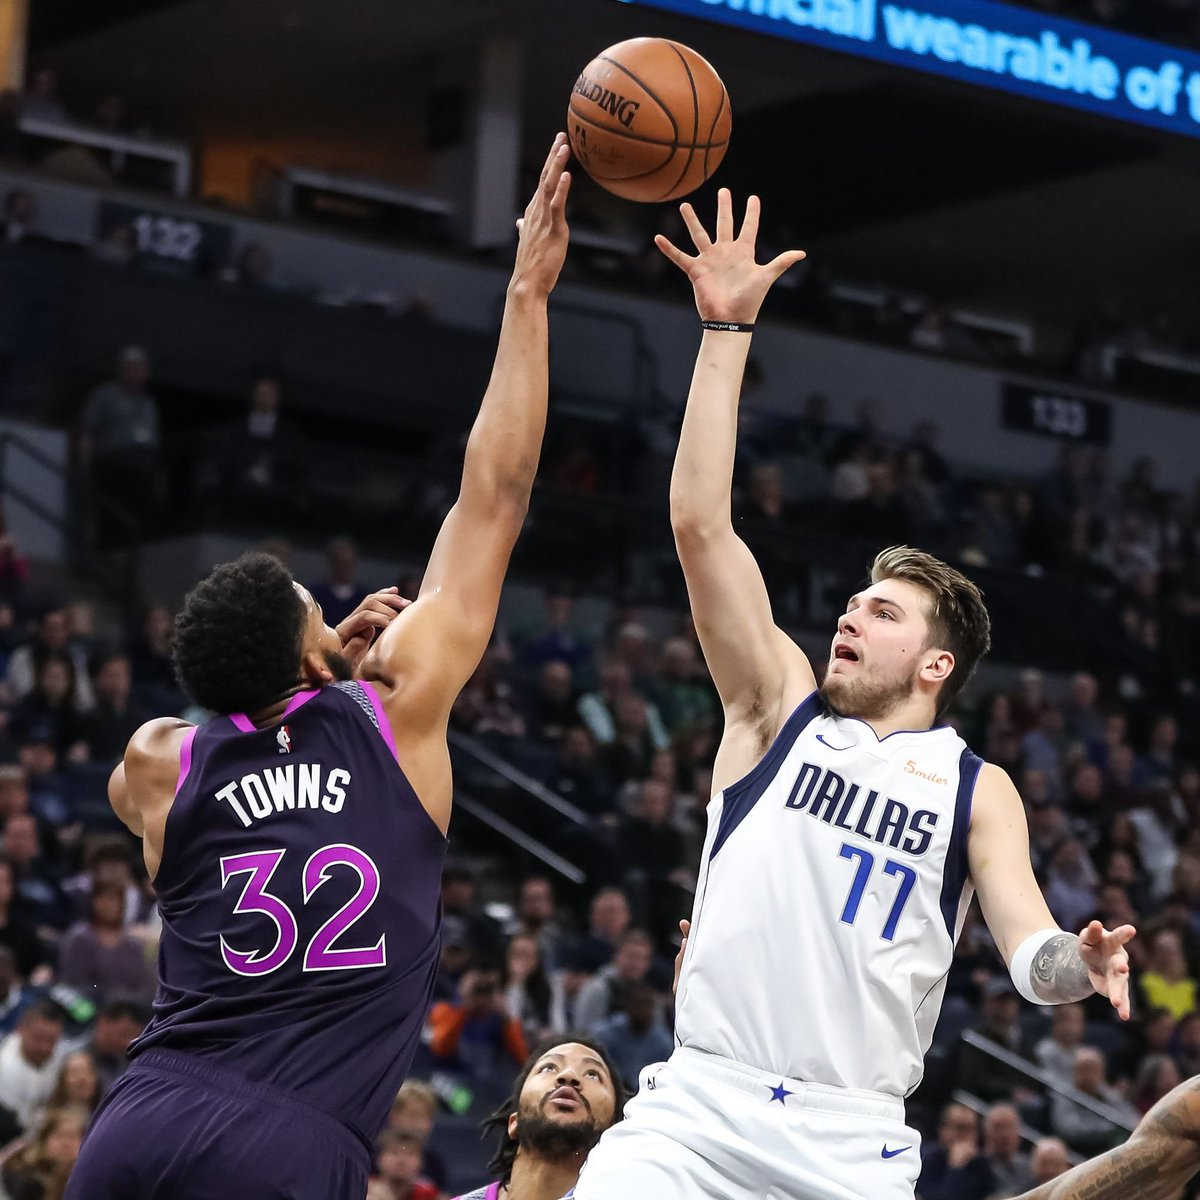 mavs rookie luka doncic ranked near top of usa todays - HD1200×1200